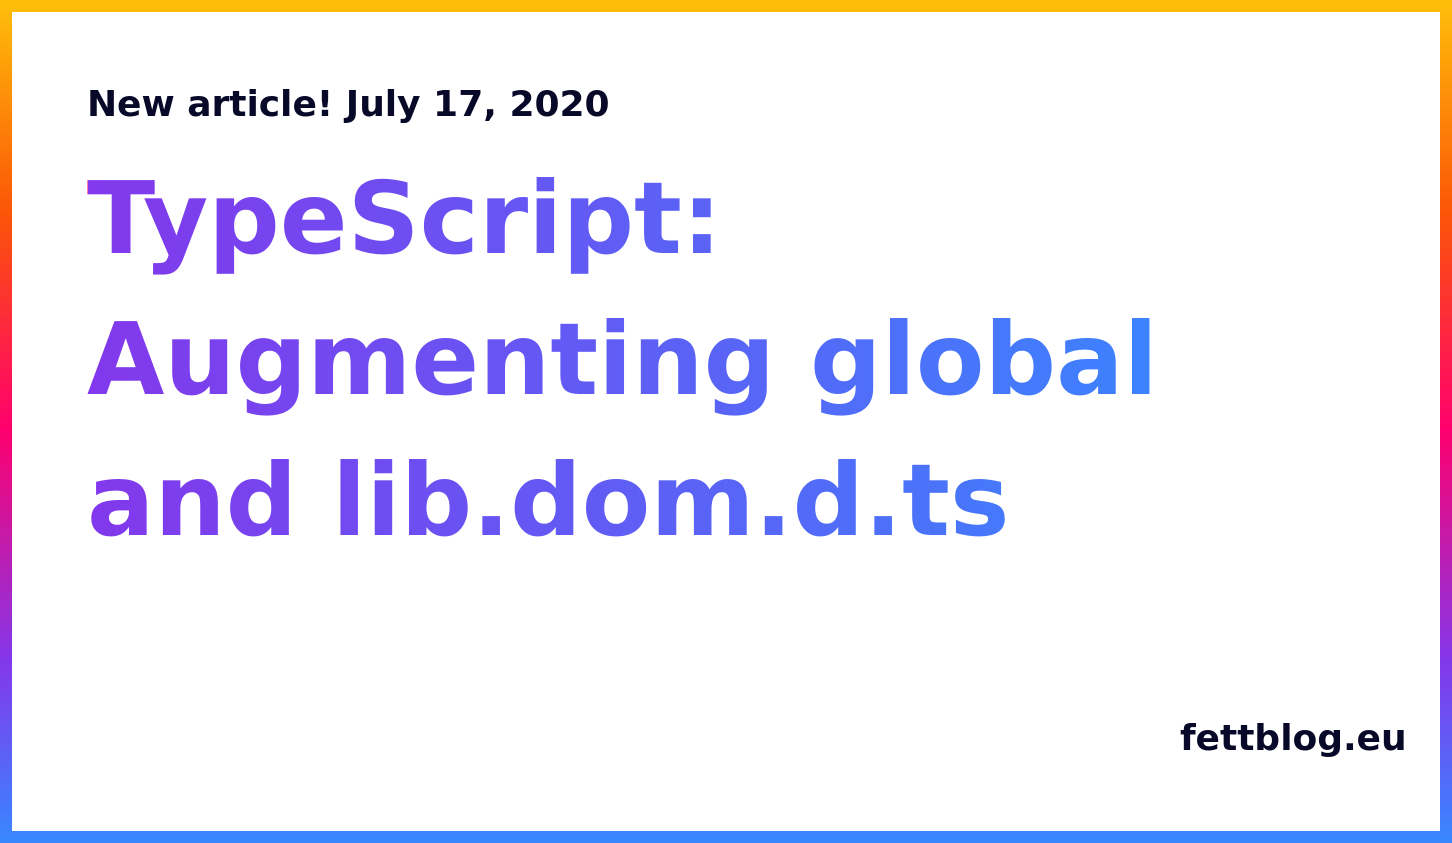 Typescript augmenting global lib dom